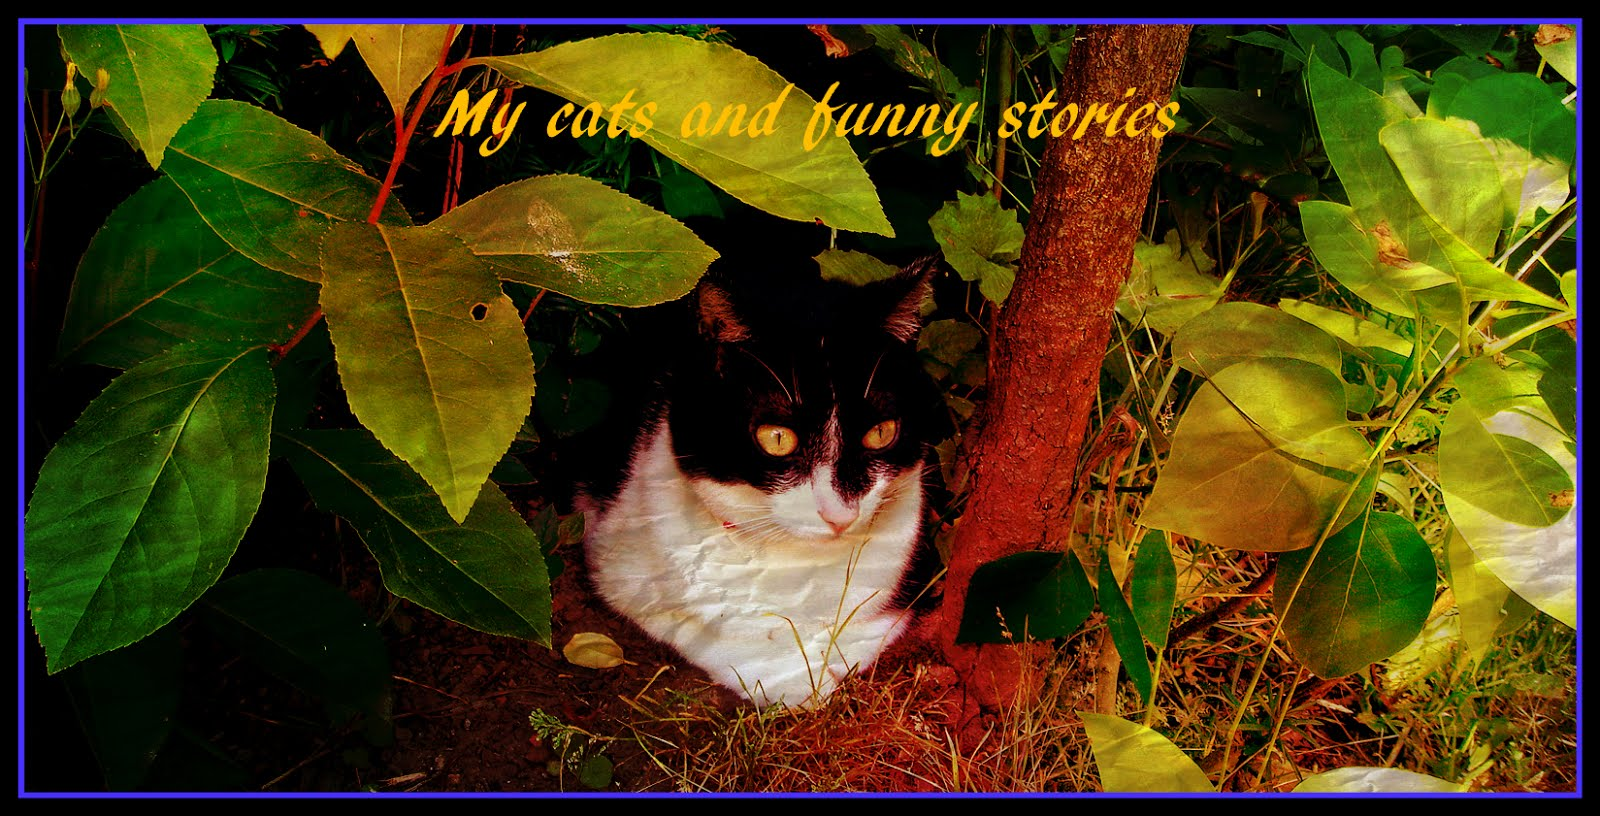 MY CATS AND FUNNY STORIES